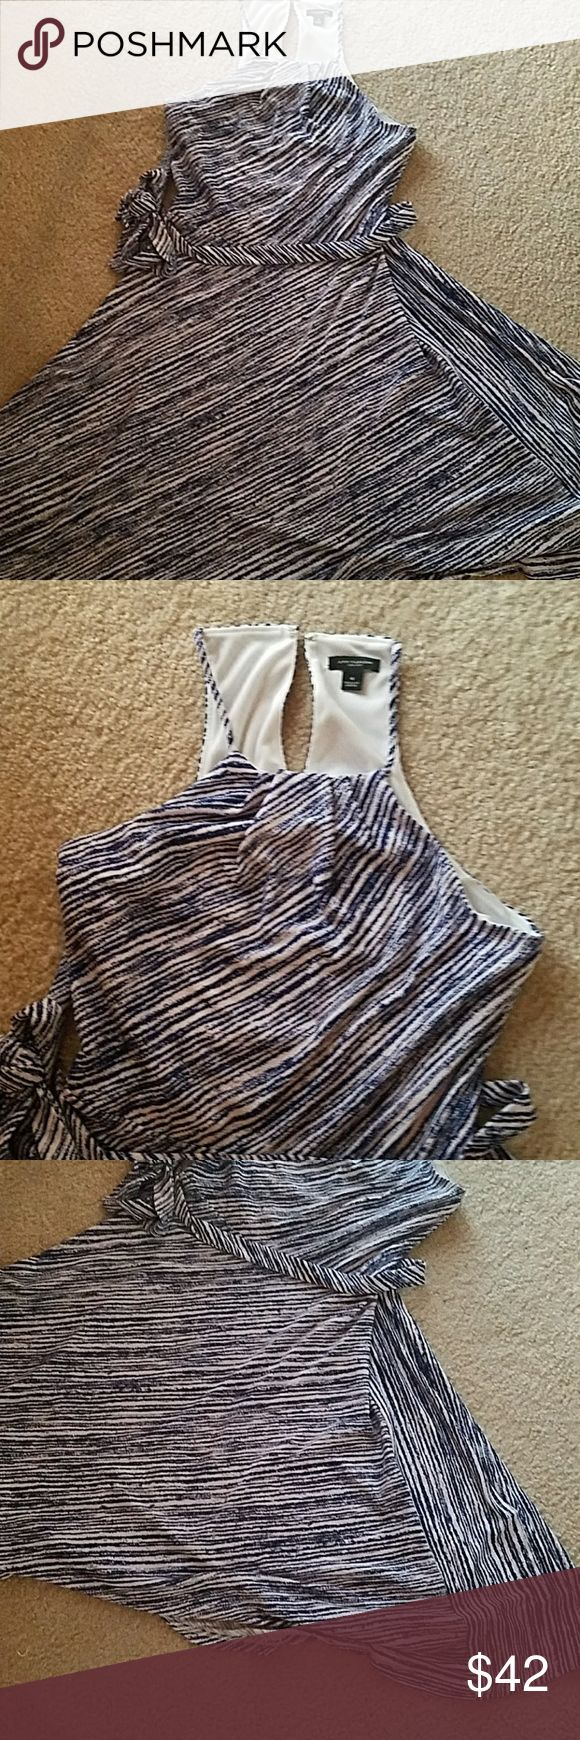 Ann Taylor EUC Halter dress Ann Taylor halter dress. Gorgeous stripes. Tie at waist. Flows away from waist. Perfect for a wedding, date night...especially with dancing. Ann Taylor Dresses